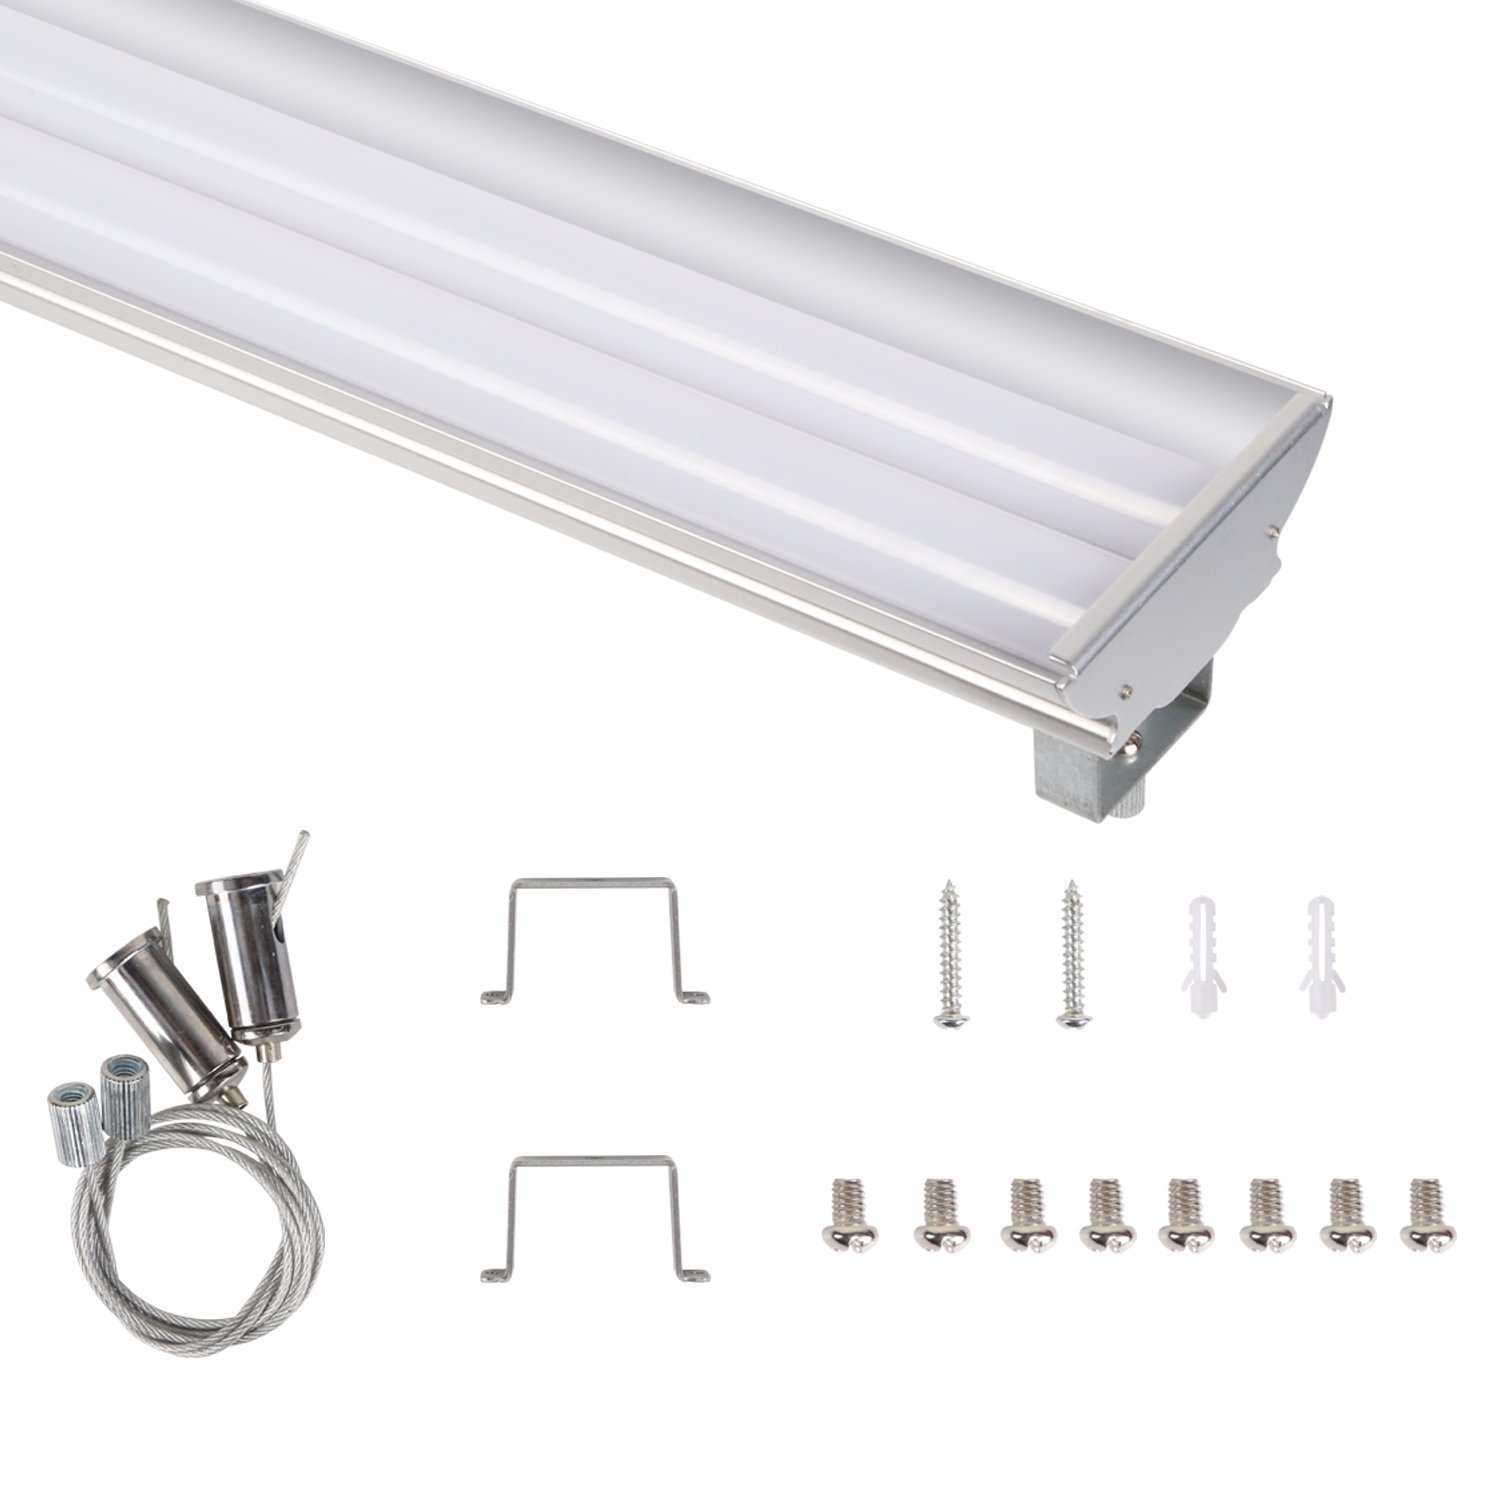 Hykolity 4FT 40W LED Shop Light with Pull Chain, 4200lm Hanging Garage Utility Light with Cord, Robust Aluminium Body, 5000K Workbench Light, 64w Fluorescent Fixture Equivalent, 5year Warranty-4 Pack by hykolity (Image #4)